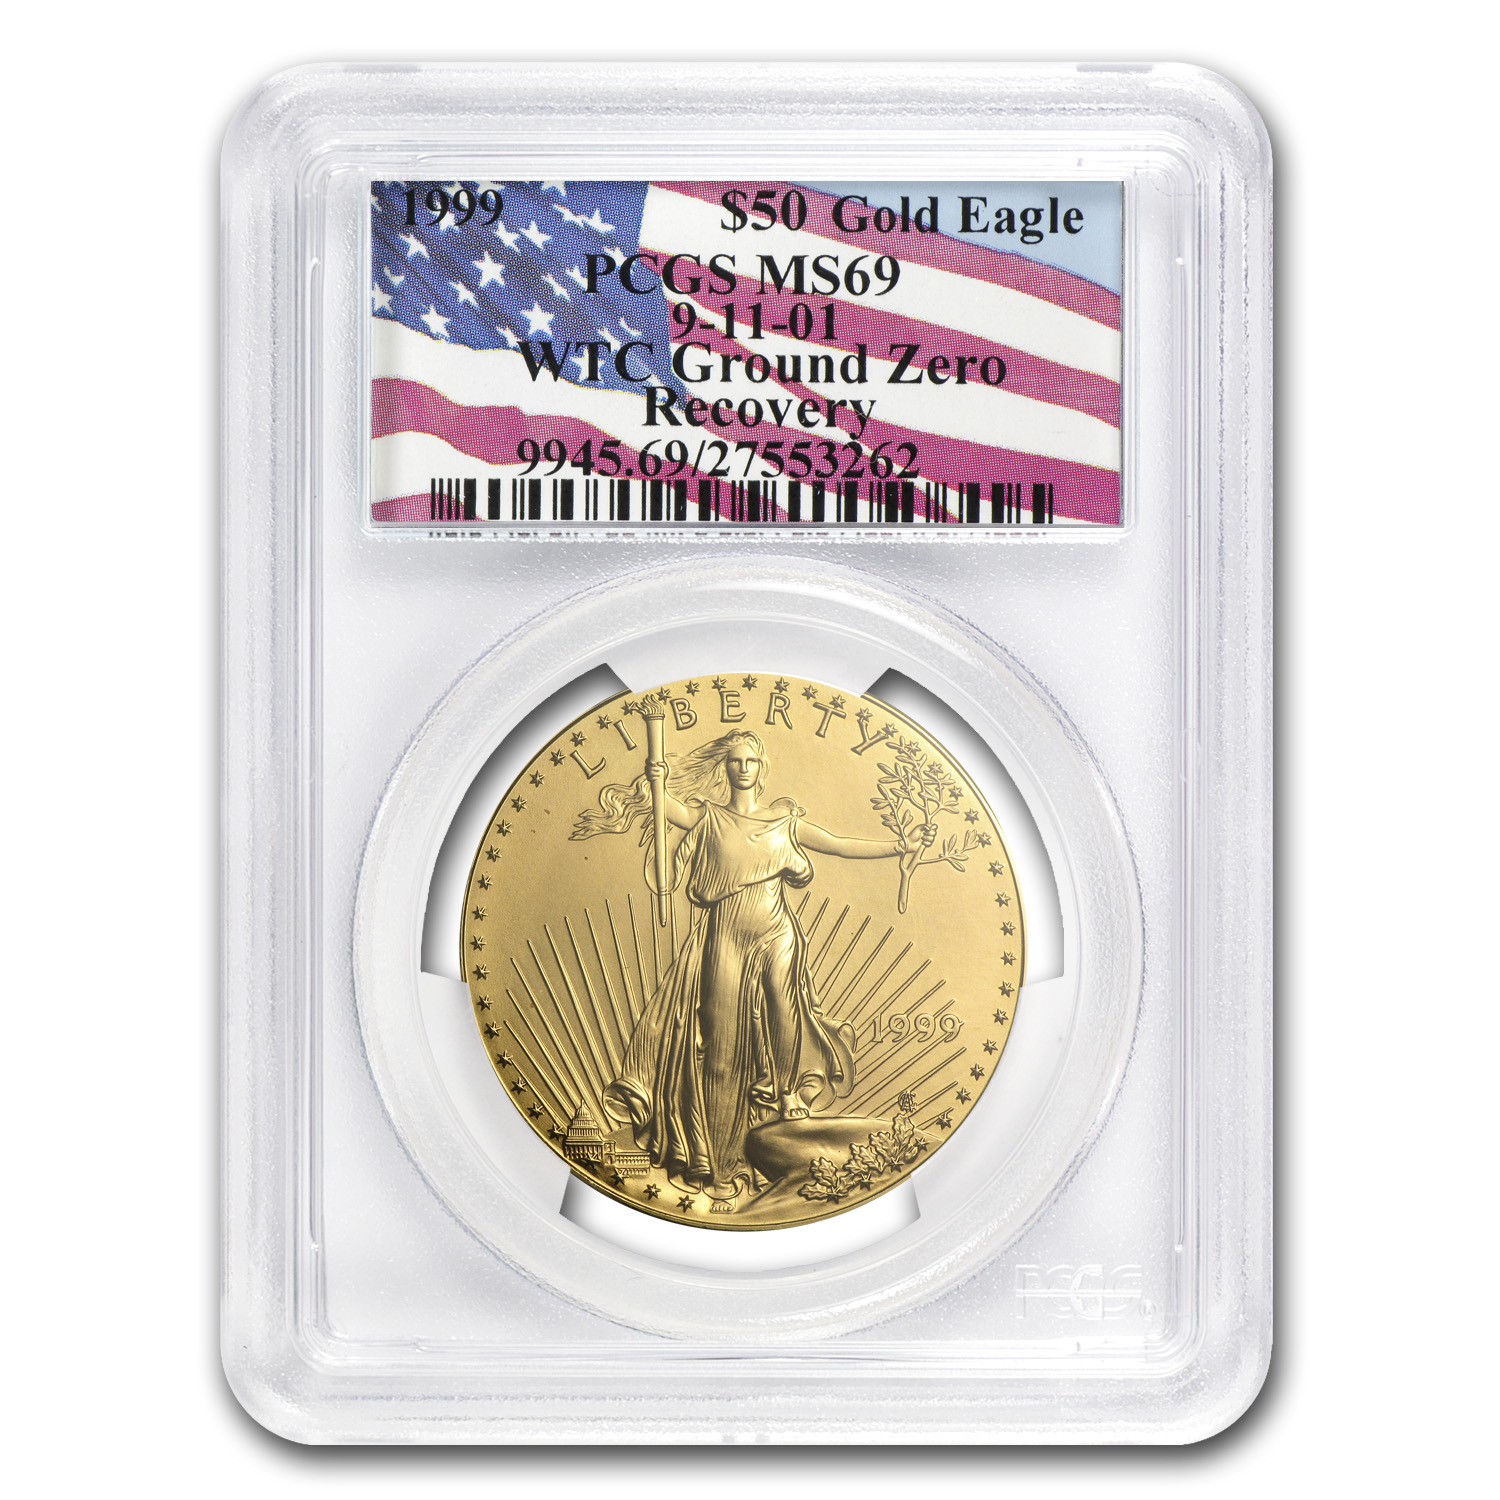 1999 1 oz Gold American Eagle MS-69 PCGS (World Trade Center)